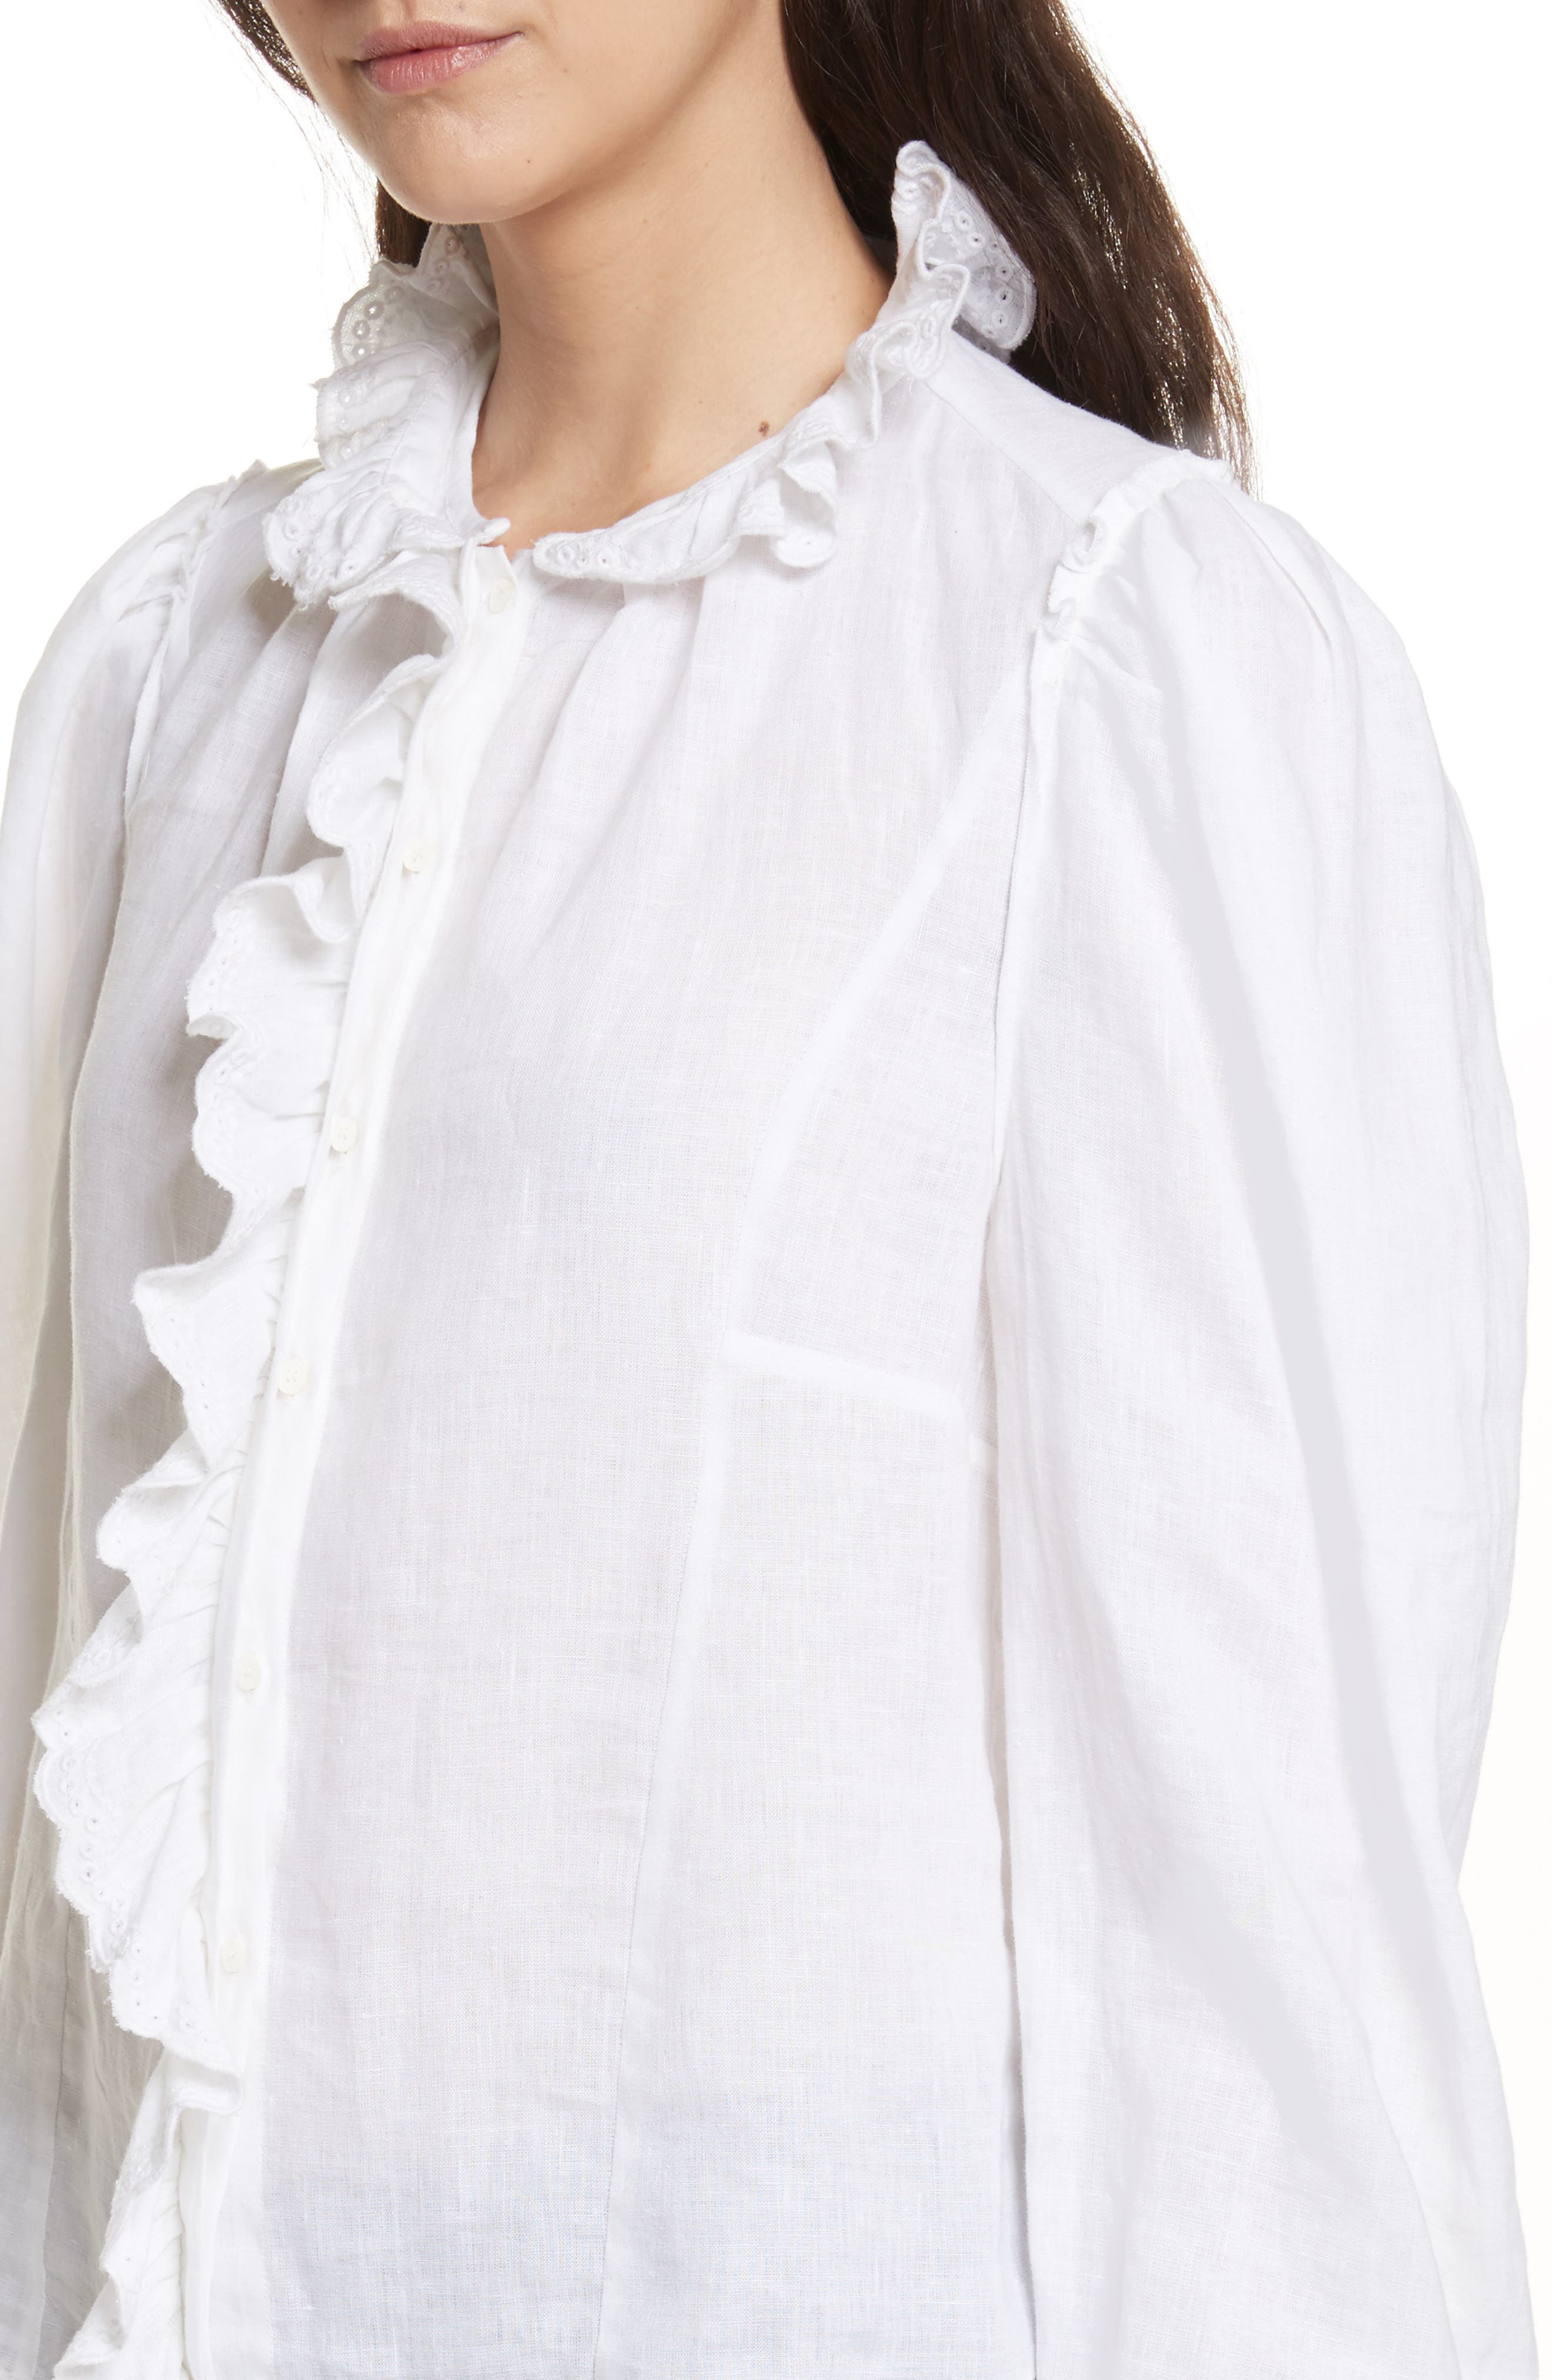 Isabel Marant Étoile Tauren Broderie Linen Shirt,                             Alternate thumbnail 4, color,                             100